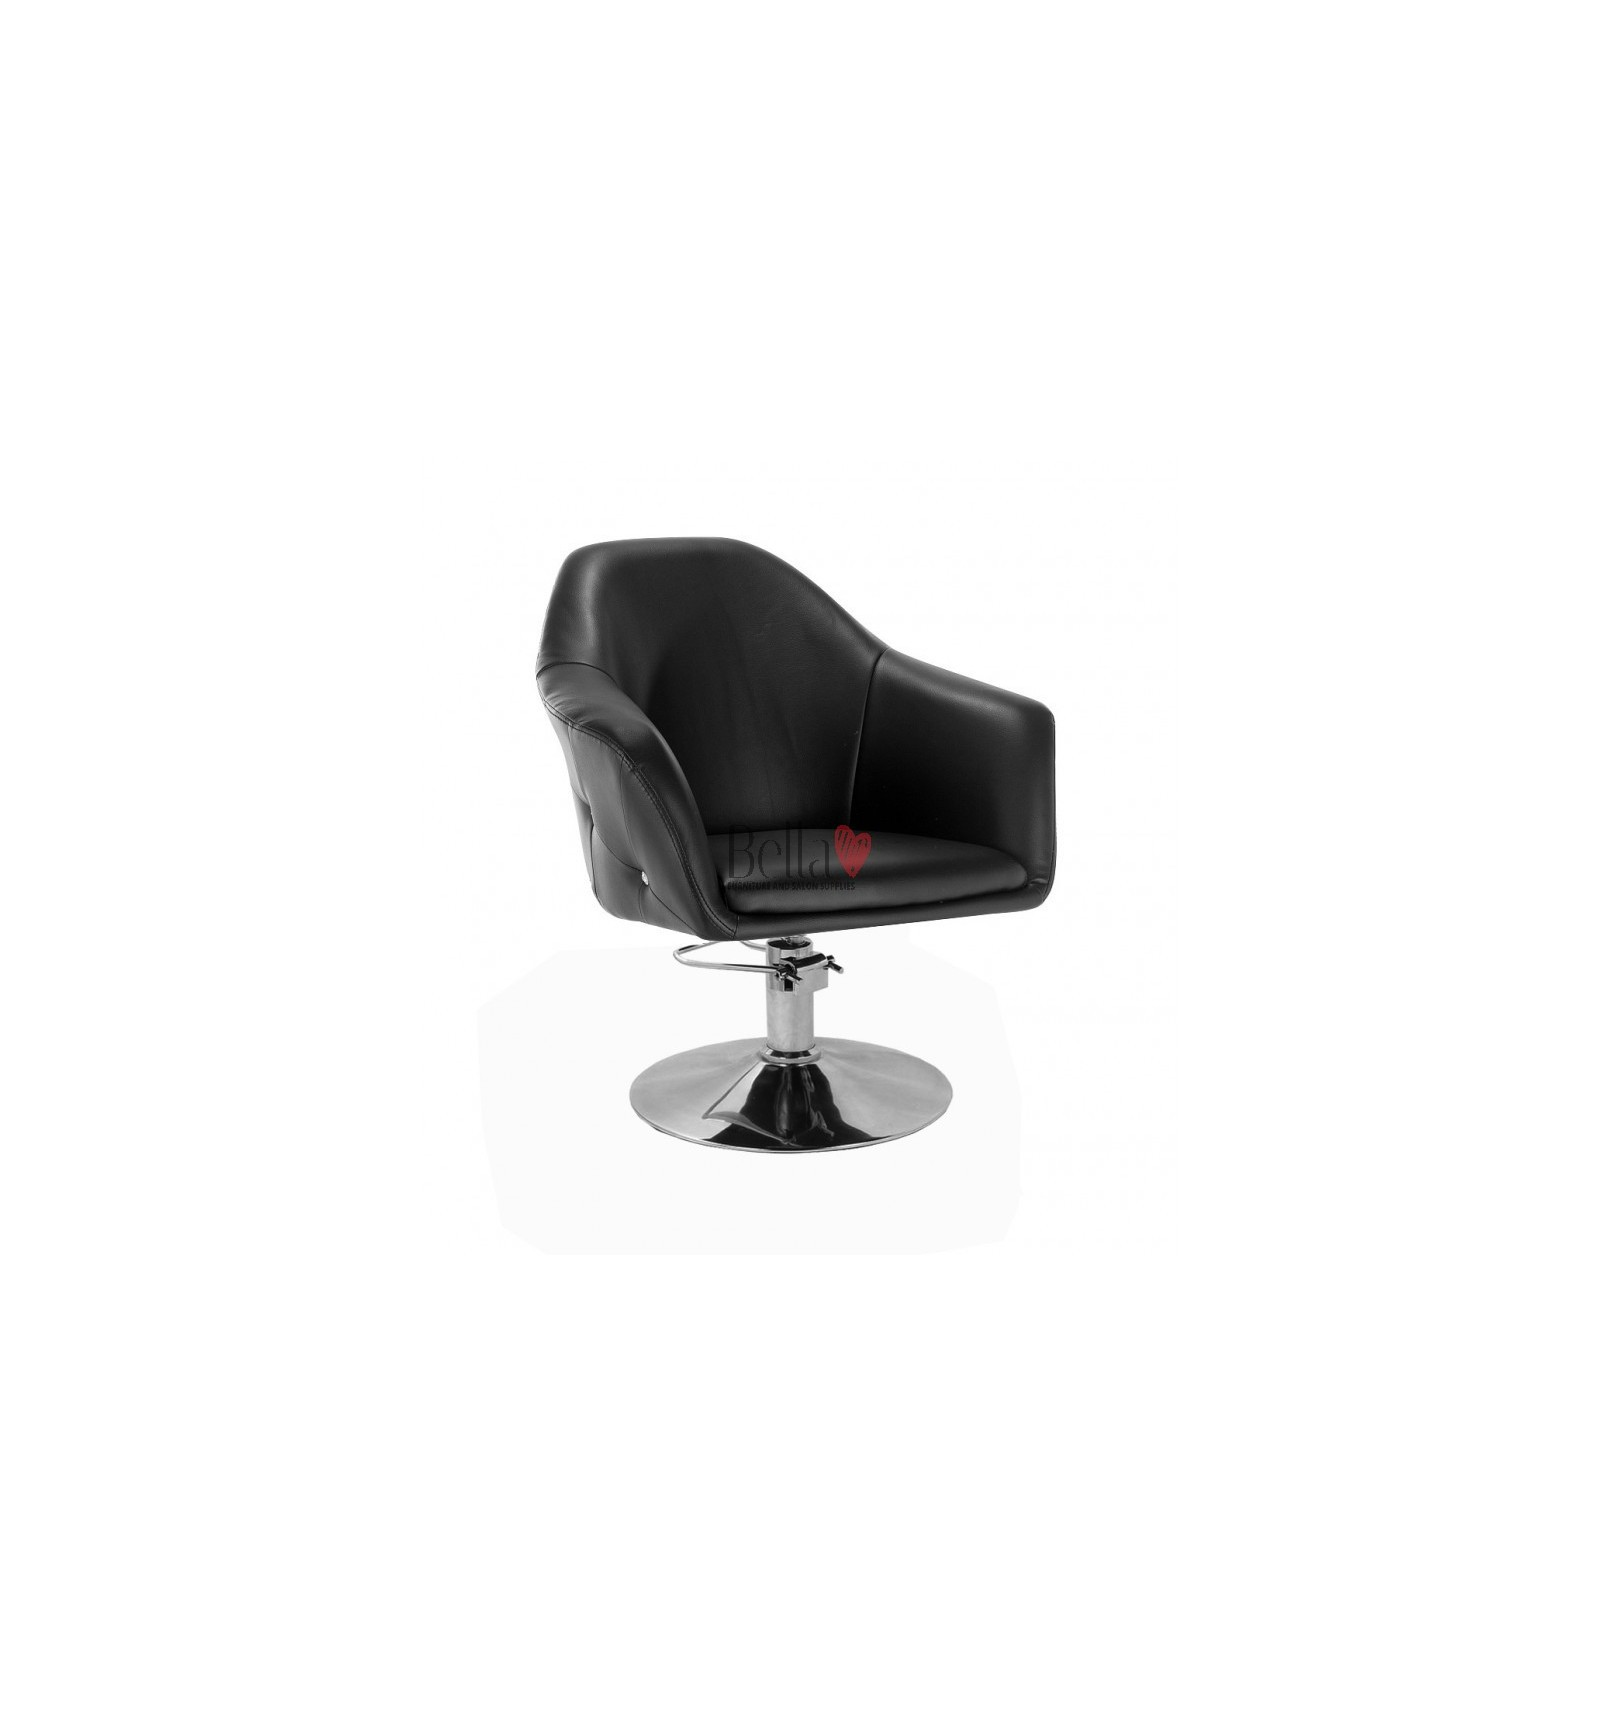 hydraulic chair for sale office johor bahru chairs ireland